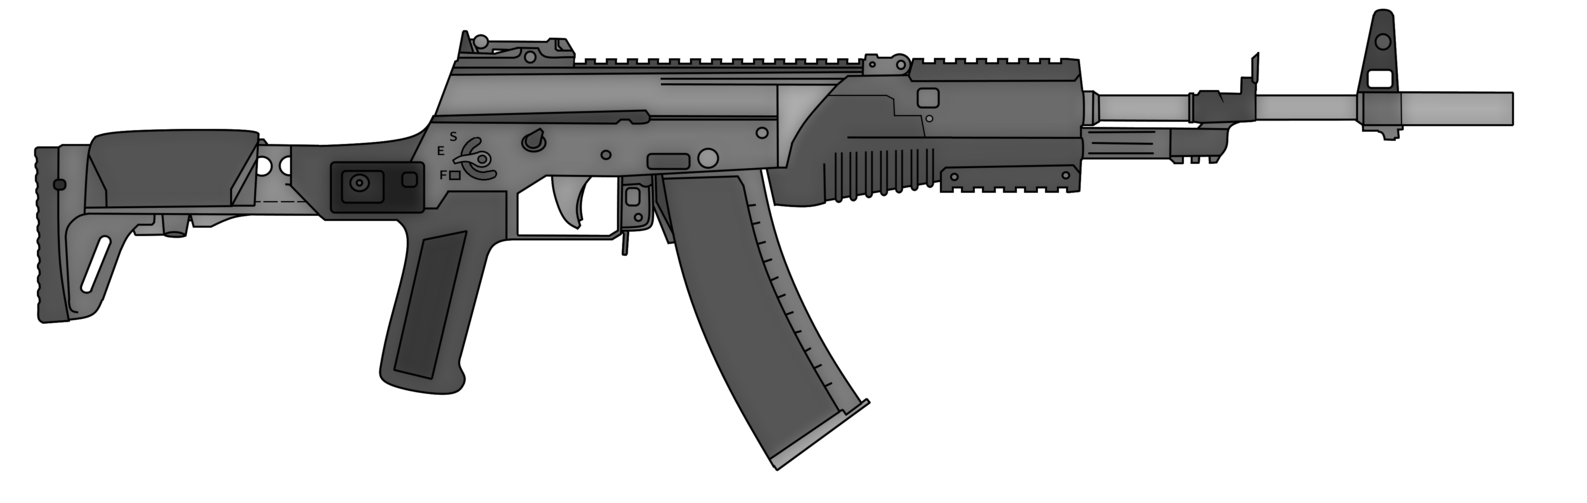 Battle rifle png. Ec by thefrozenwaffle on